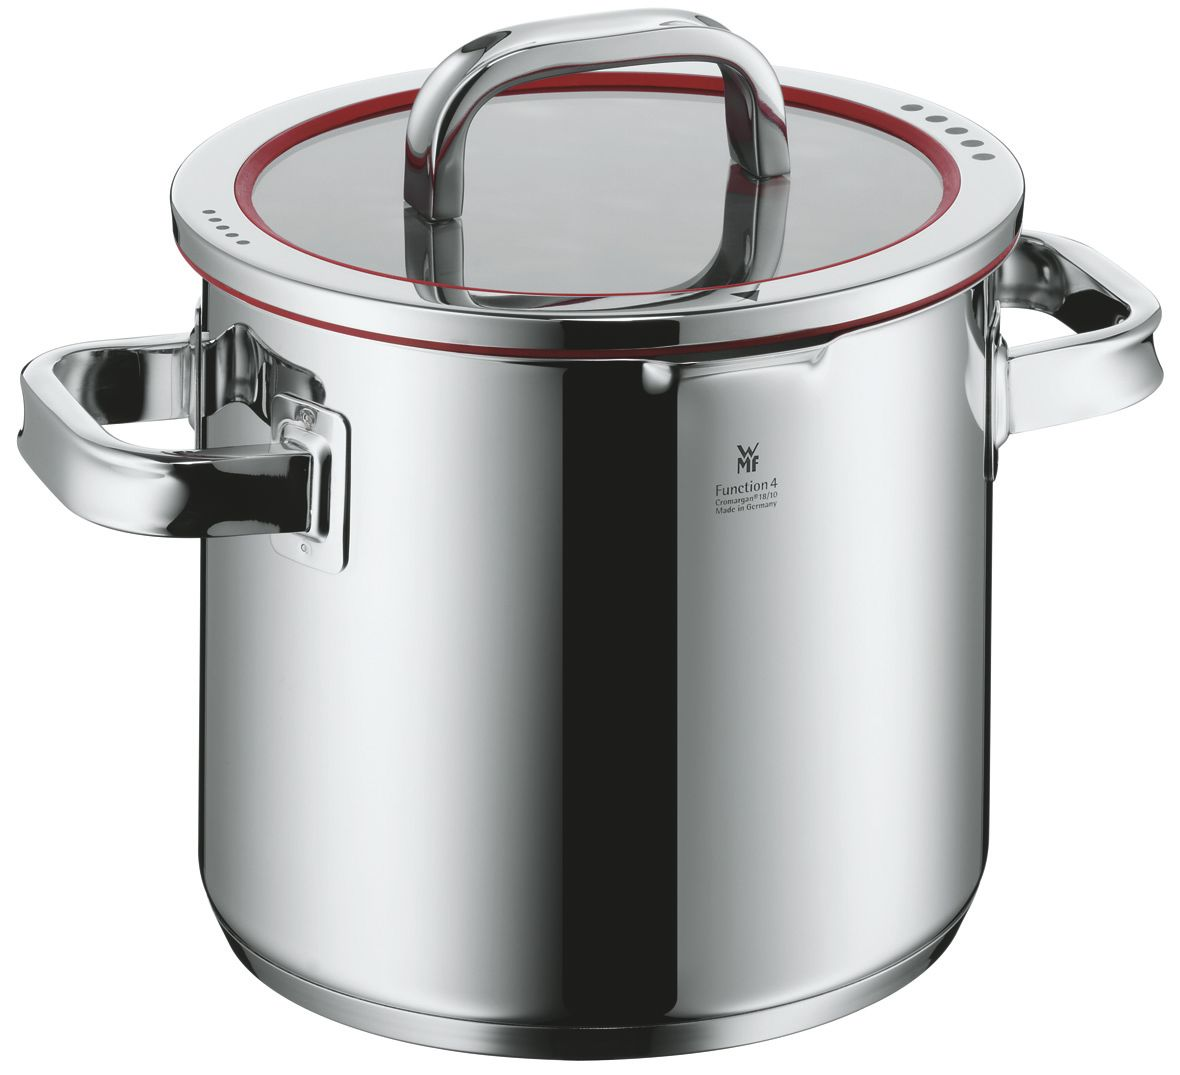 WMF WMF Function 4 stock pot with lid 20cm